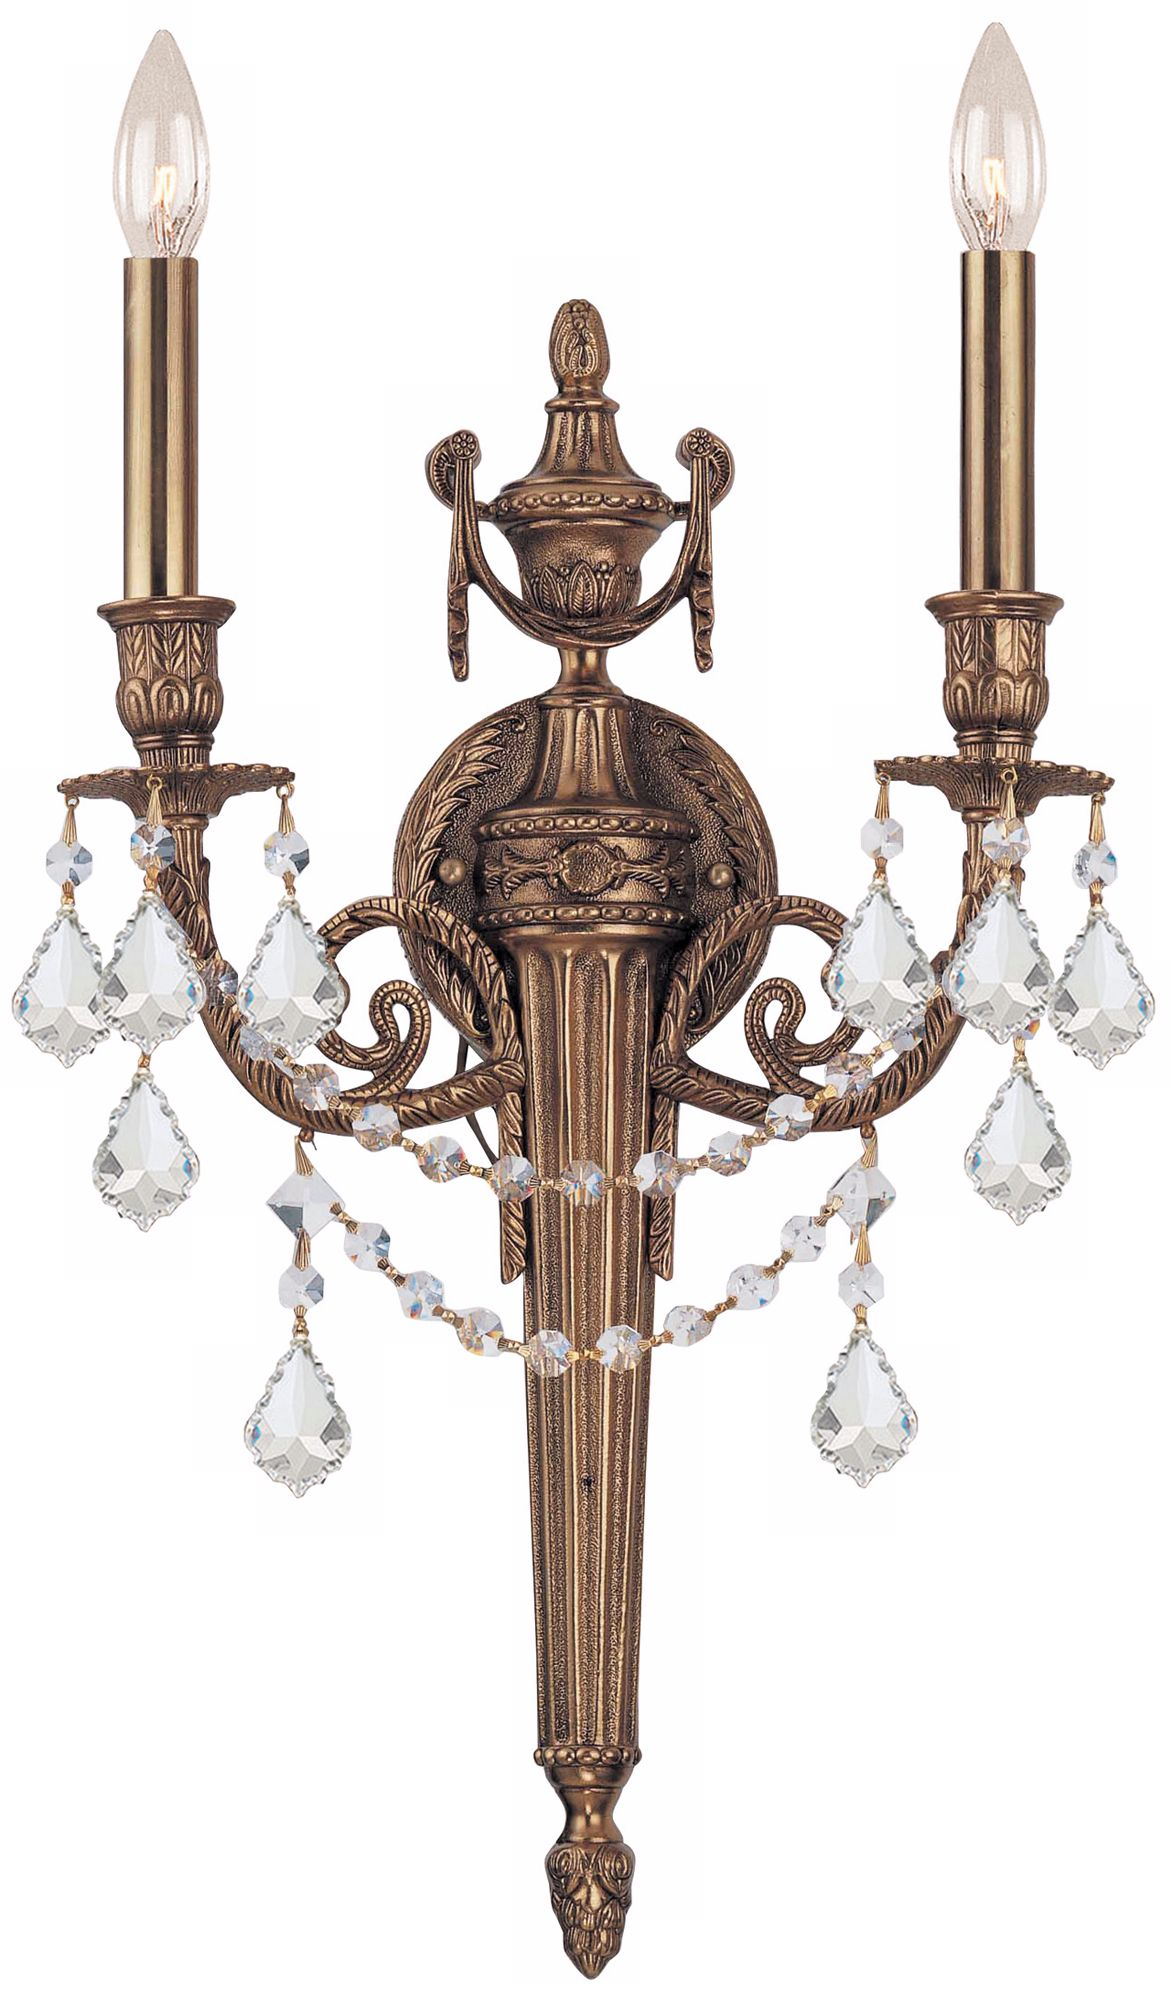 Crystorama Arlington Collection 24  High 2-Light Wall Sconce  sc 1 st  L&s Plus & Traditional Wall Sconces - Decorative Traditional Sconces | Lamps Plus azcodes.com